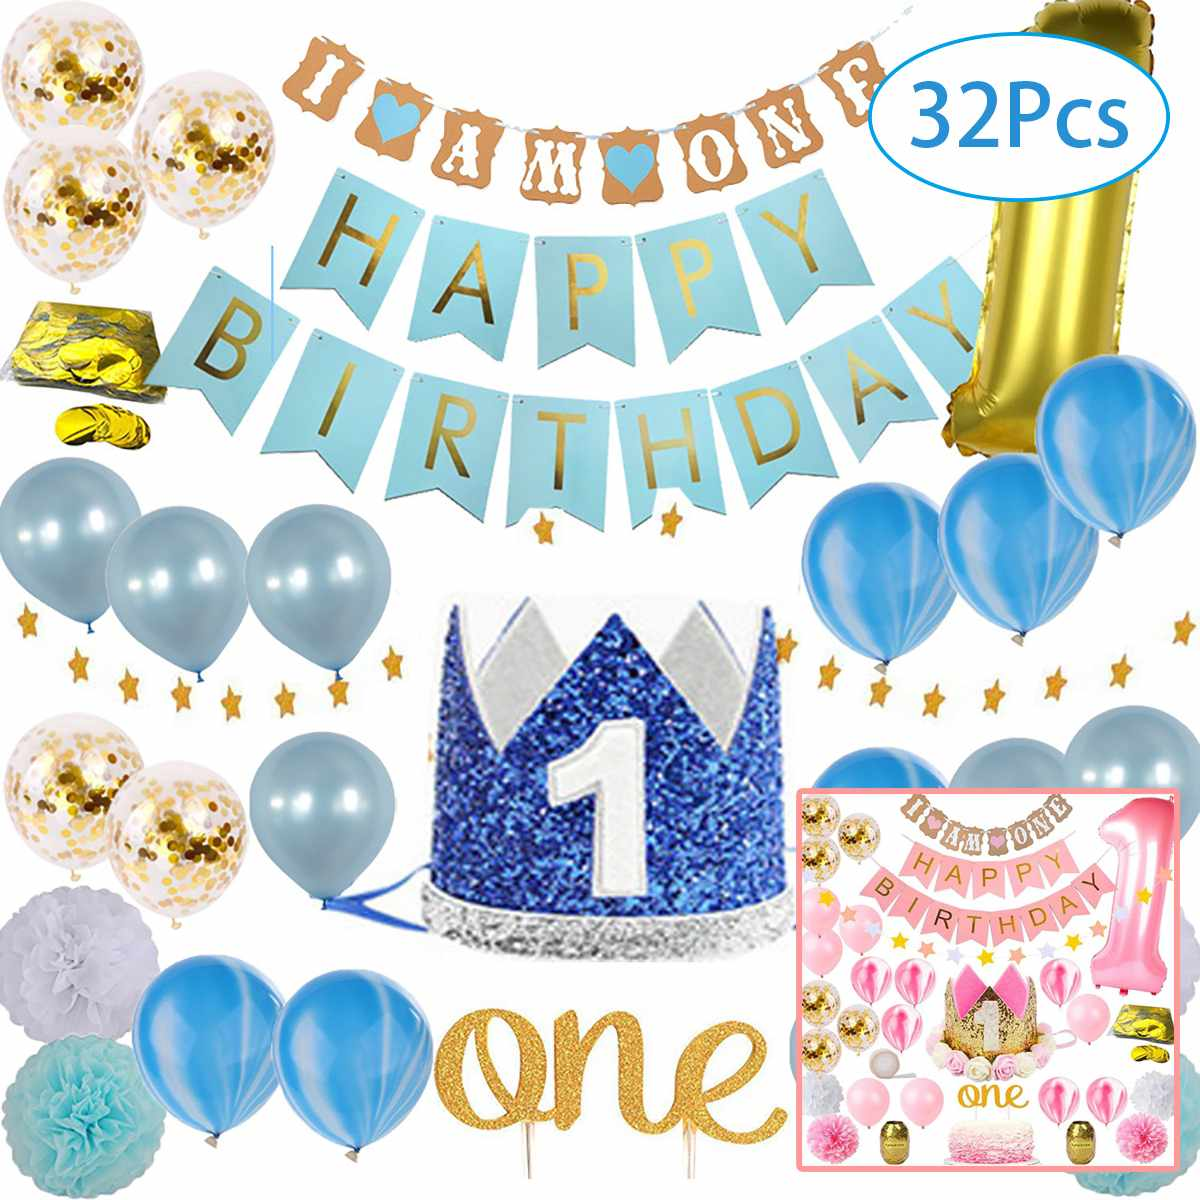 Baby Girl Boy 1st Birthday Party Supplies Party Balloon Decoration Pink Kids Baby Shower Decoration Tableware Kids Supplies Set Party Diy Decorations Aliexpress